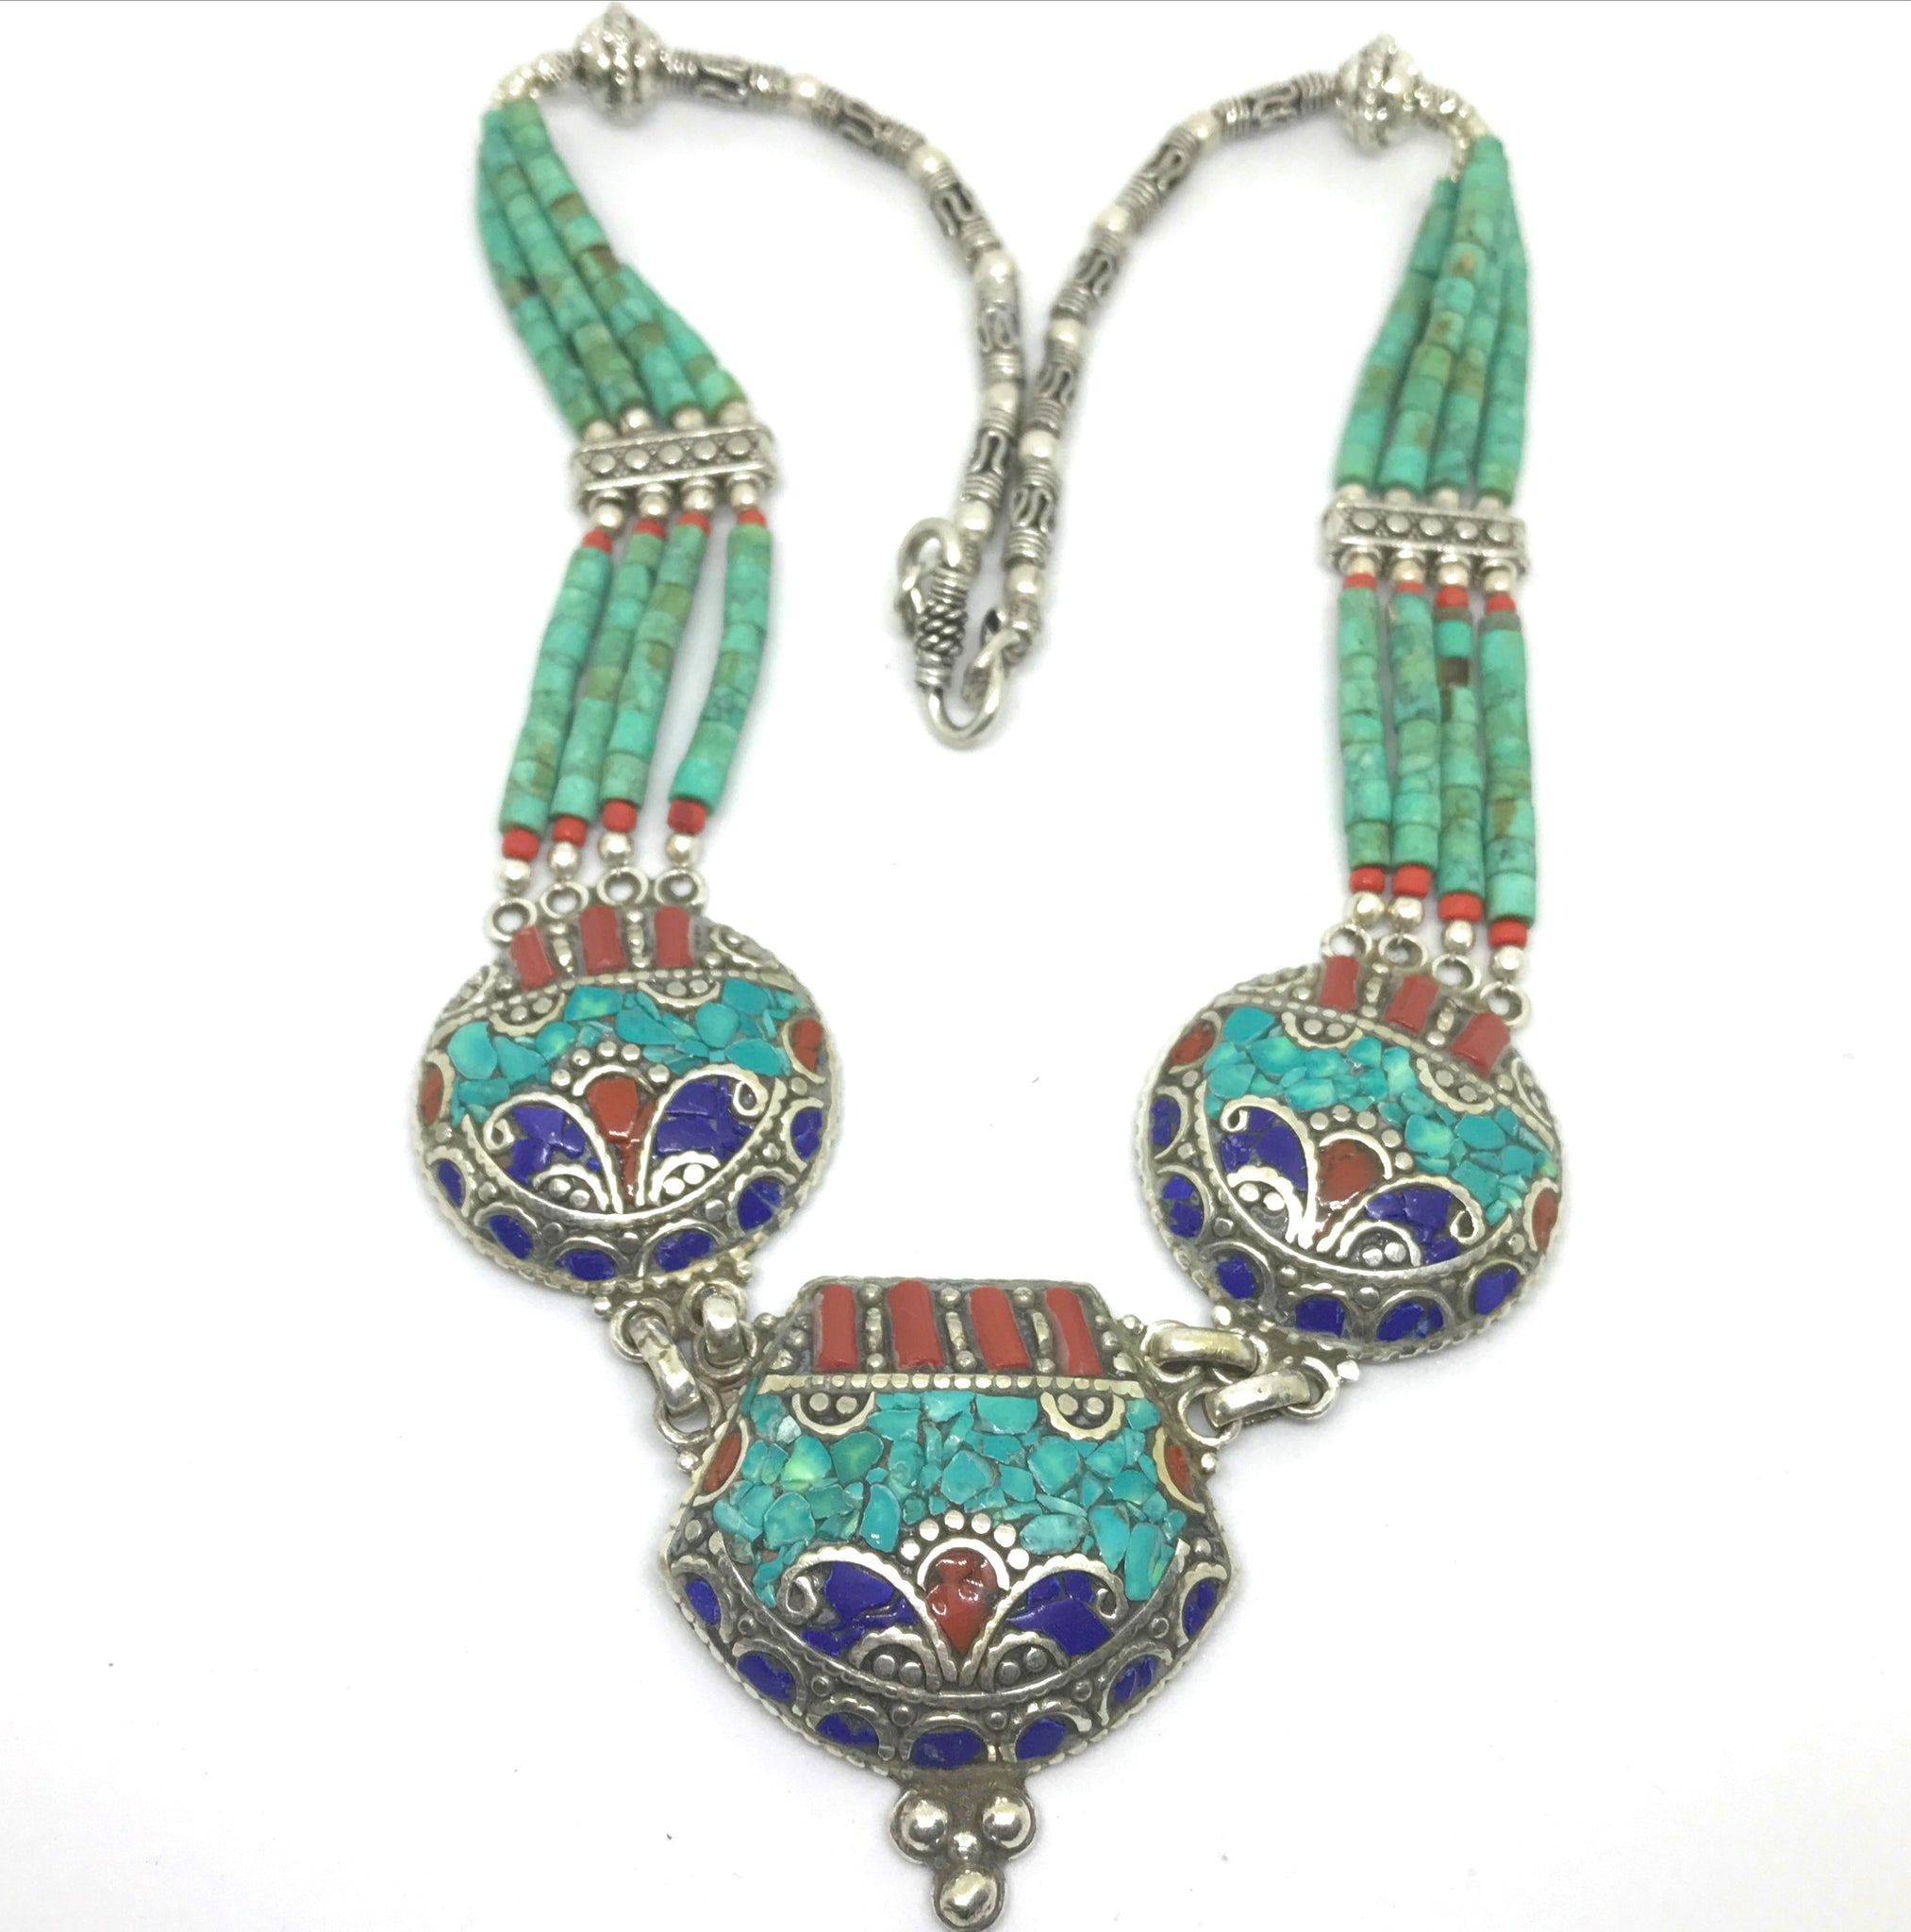 and ethnic afghan beads with lampwork collections kuchi vintage nepal tribal products antique necklace img jewelry silver glass nomad necklaces berber